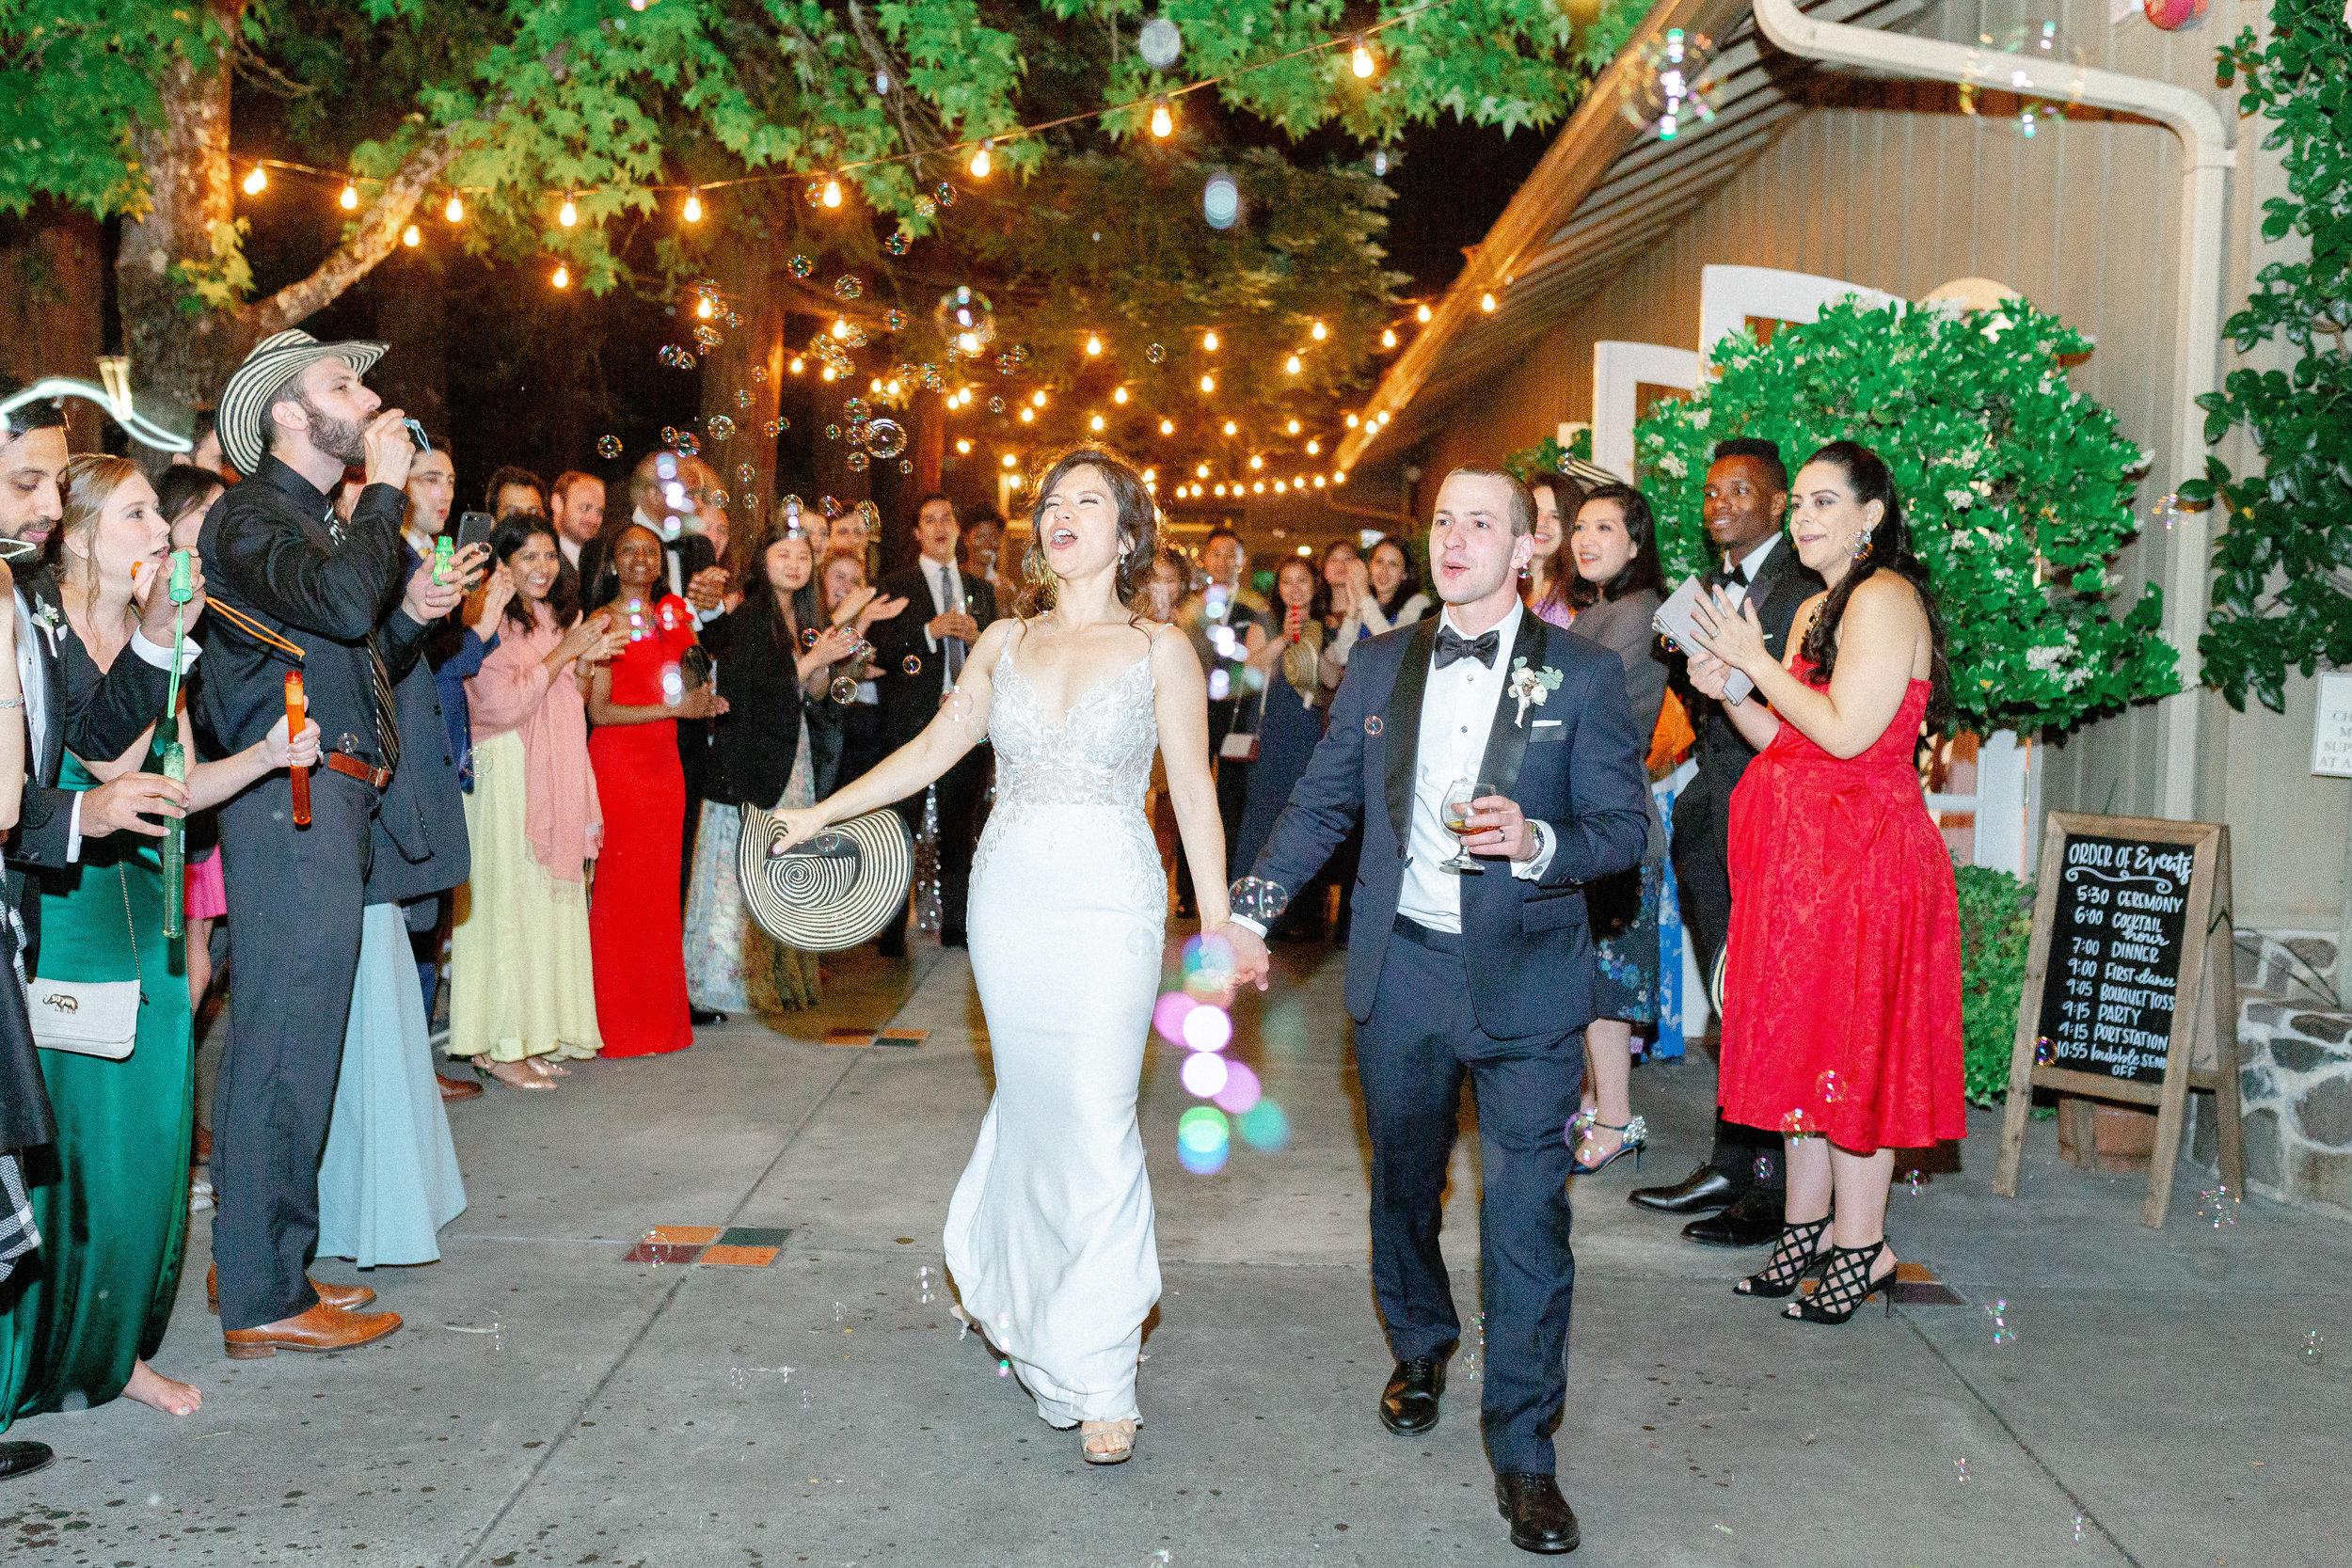 wedding-exit-at-destination-california-wedding-venue